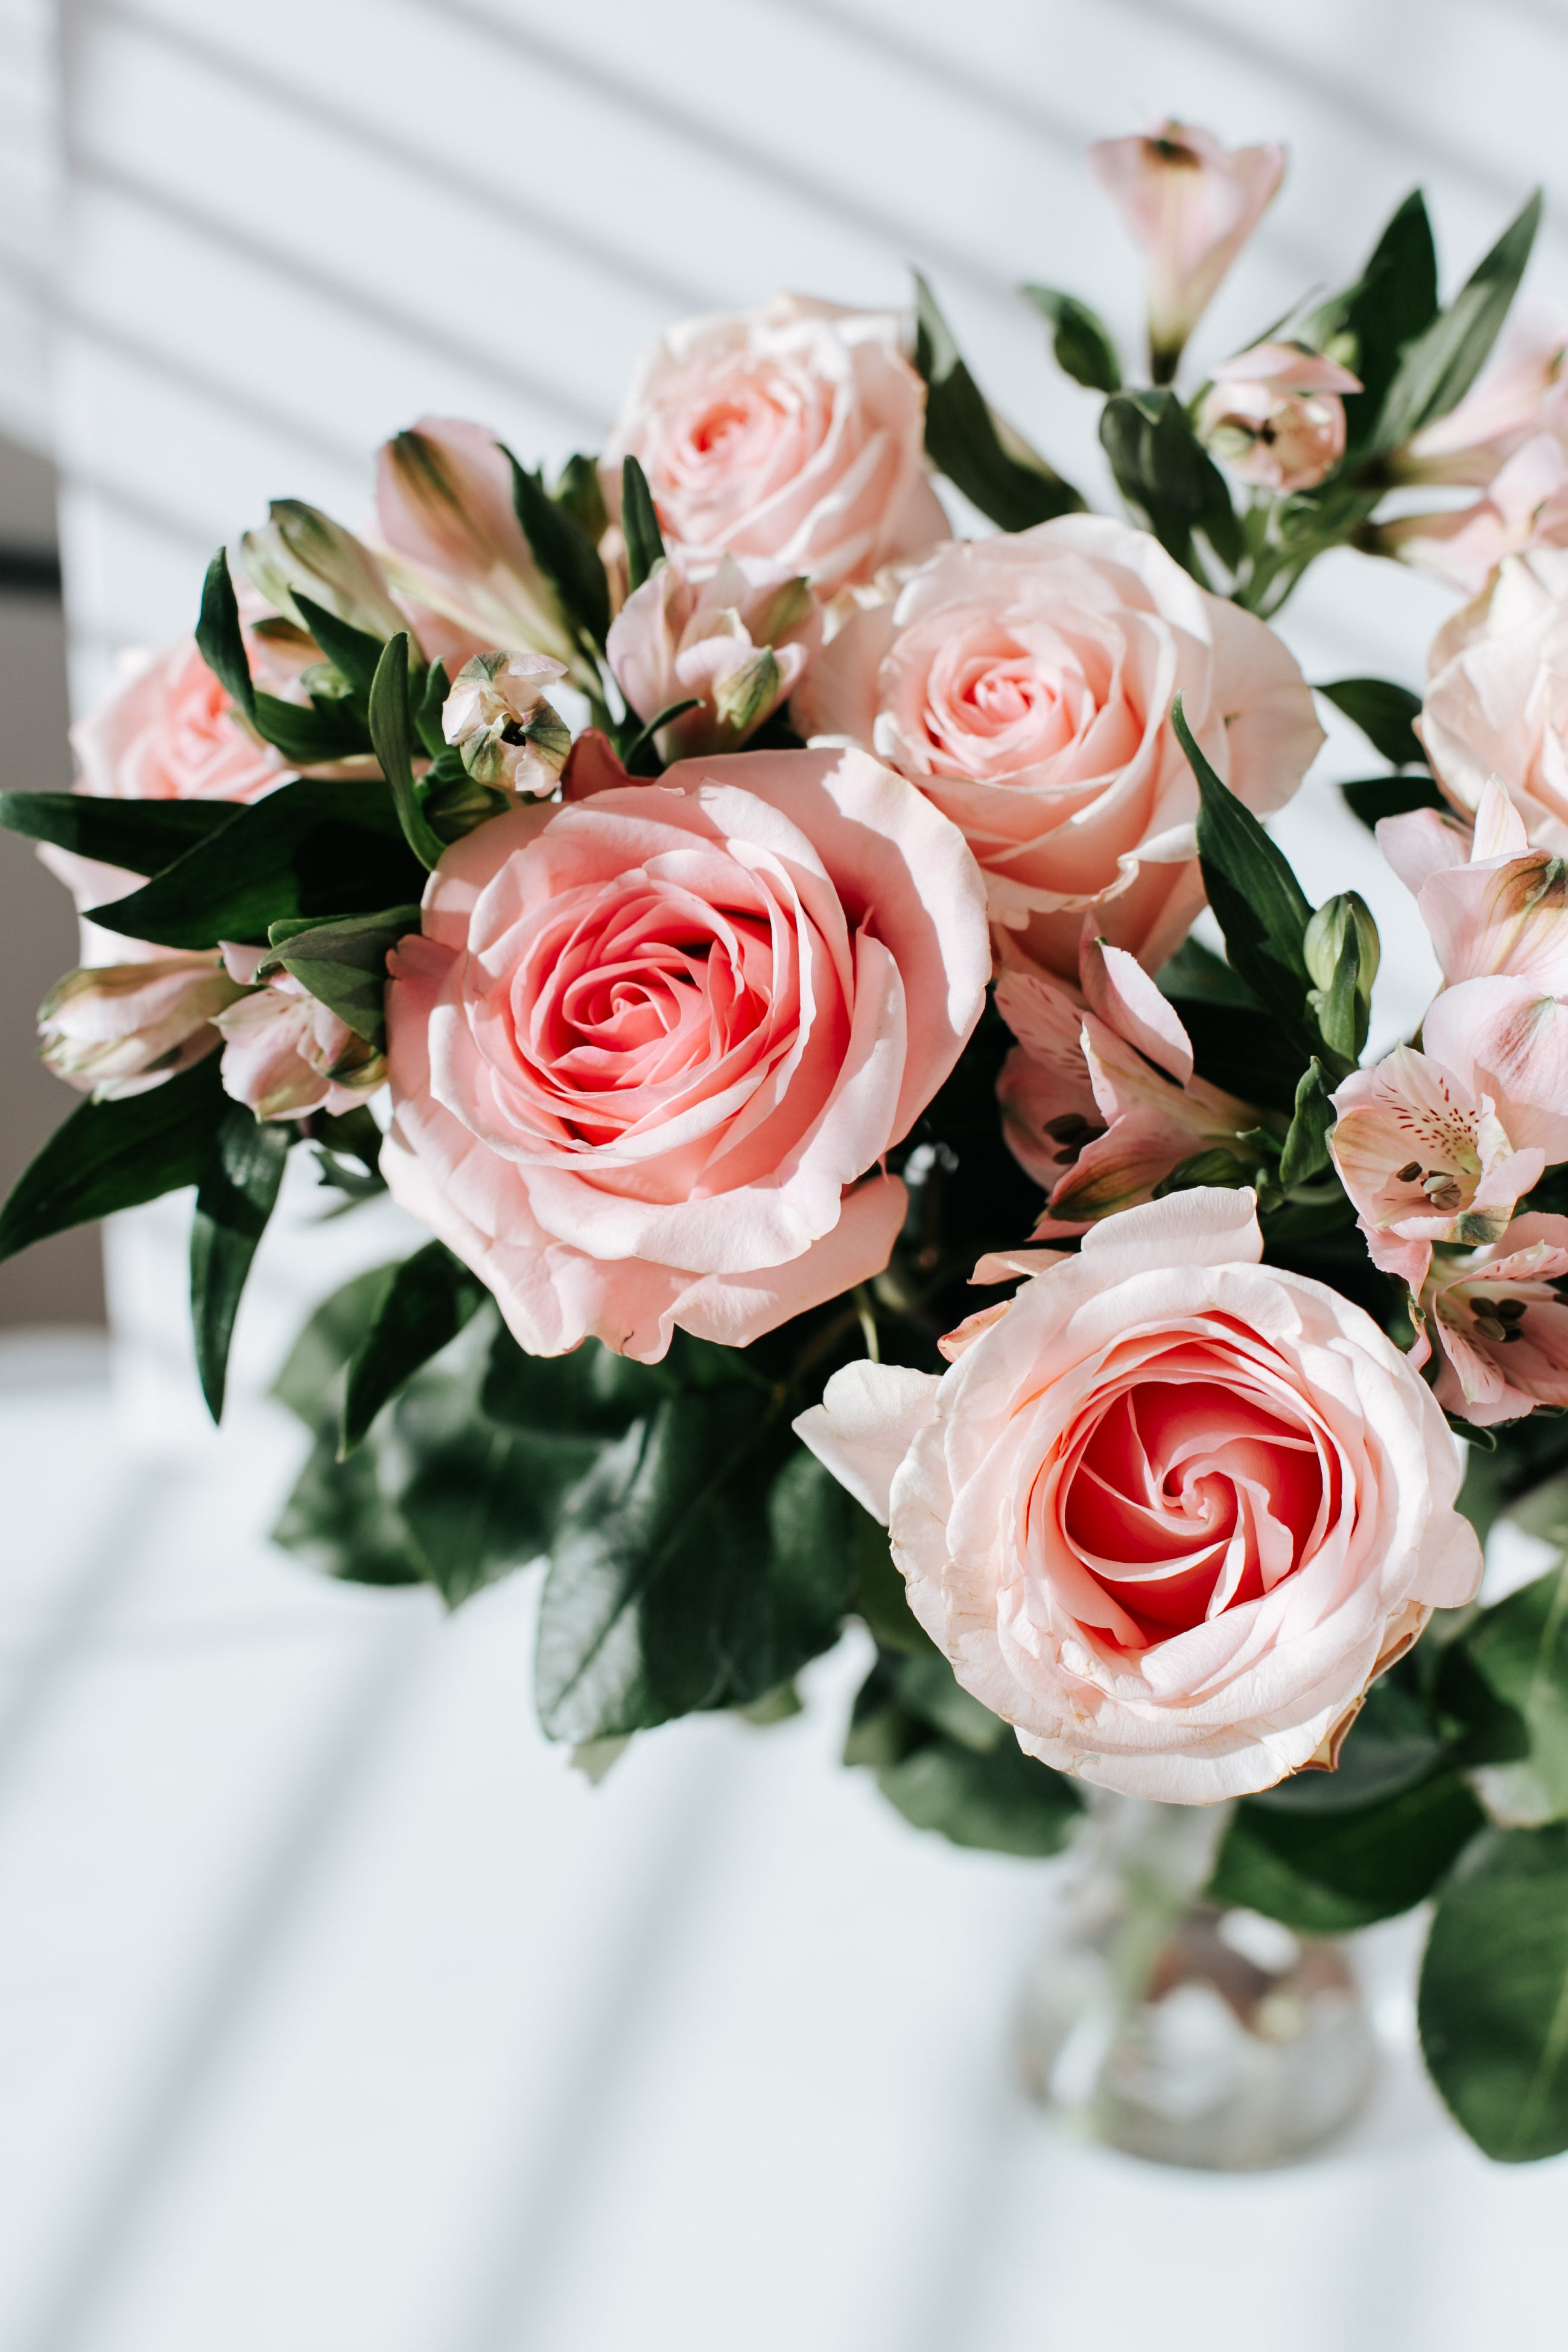 82376 download wallpaper Flowers, Roses, Lilies, Bouquet screensavers and pictures for free